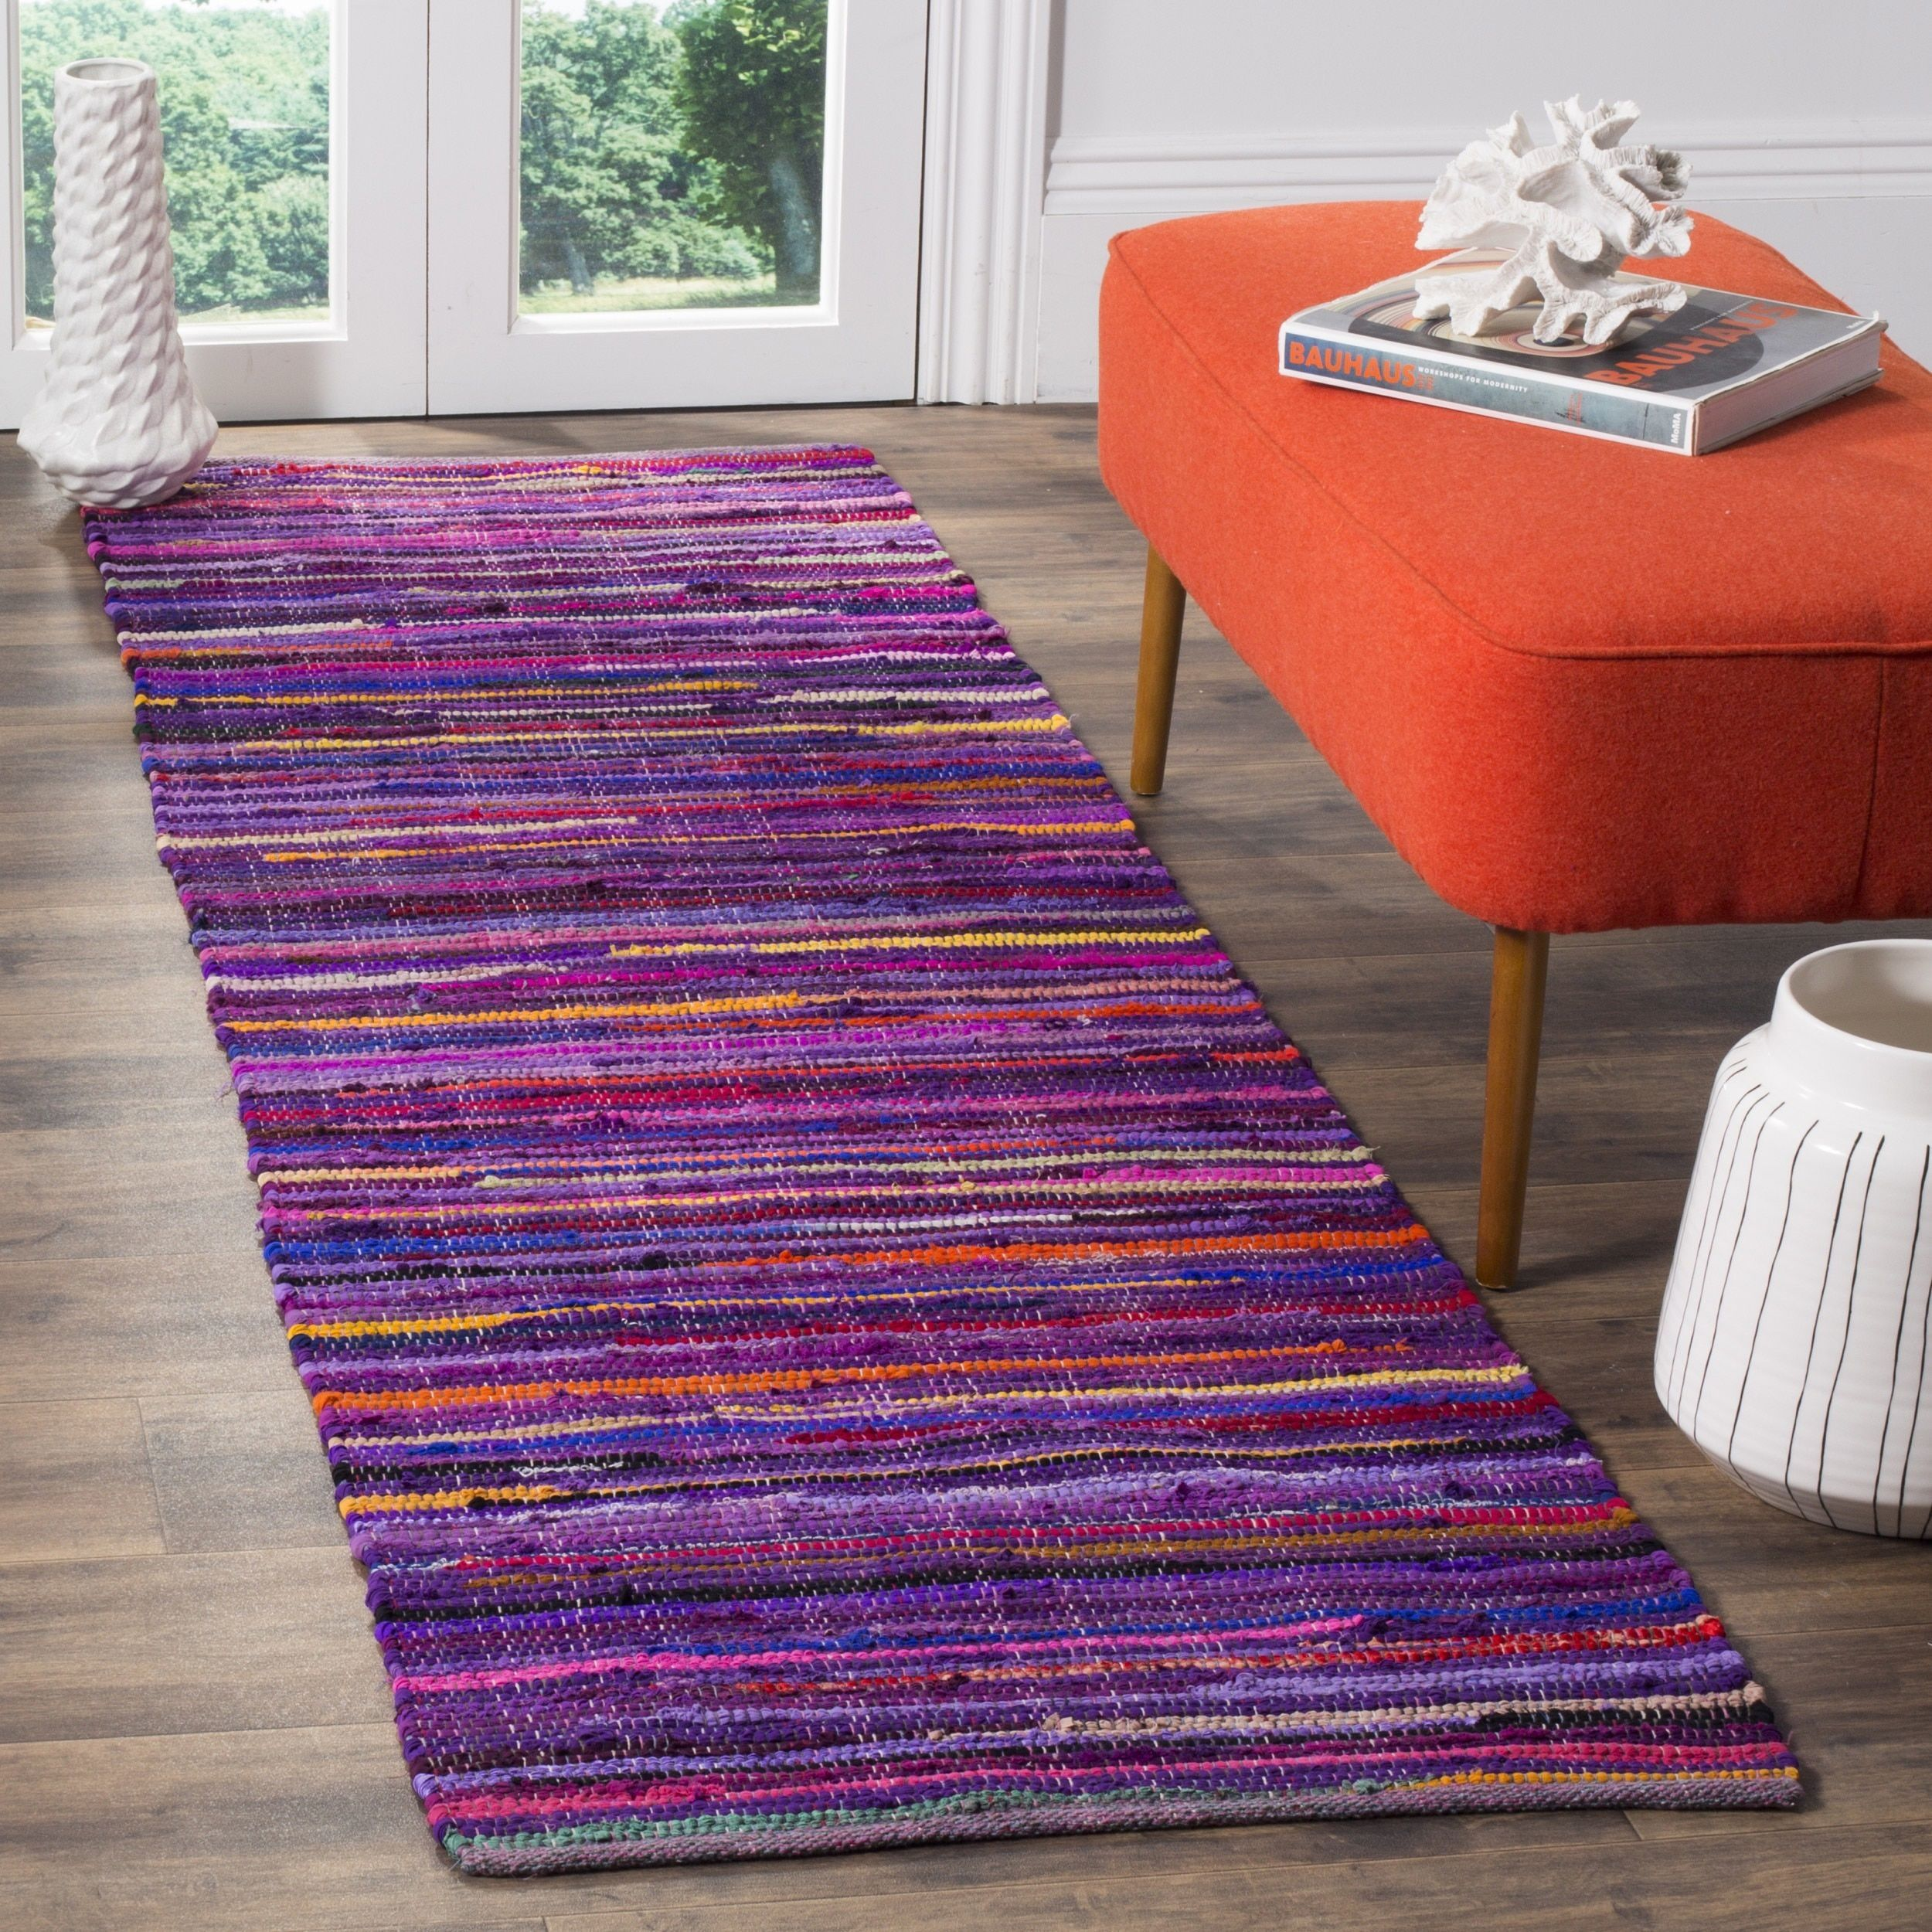 Safavieh Rag Cotton Runner Bohemian Handmade Purple/ Multi Cotton Runner (2' 3 x 8') (RAR240C-28), Size 2' x 8'